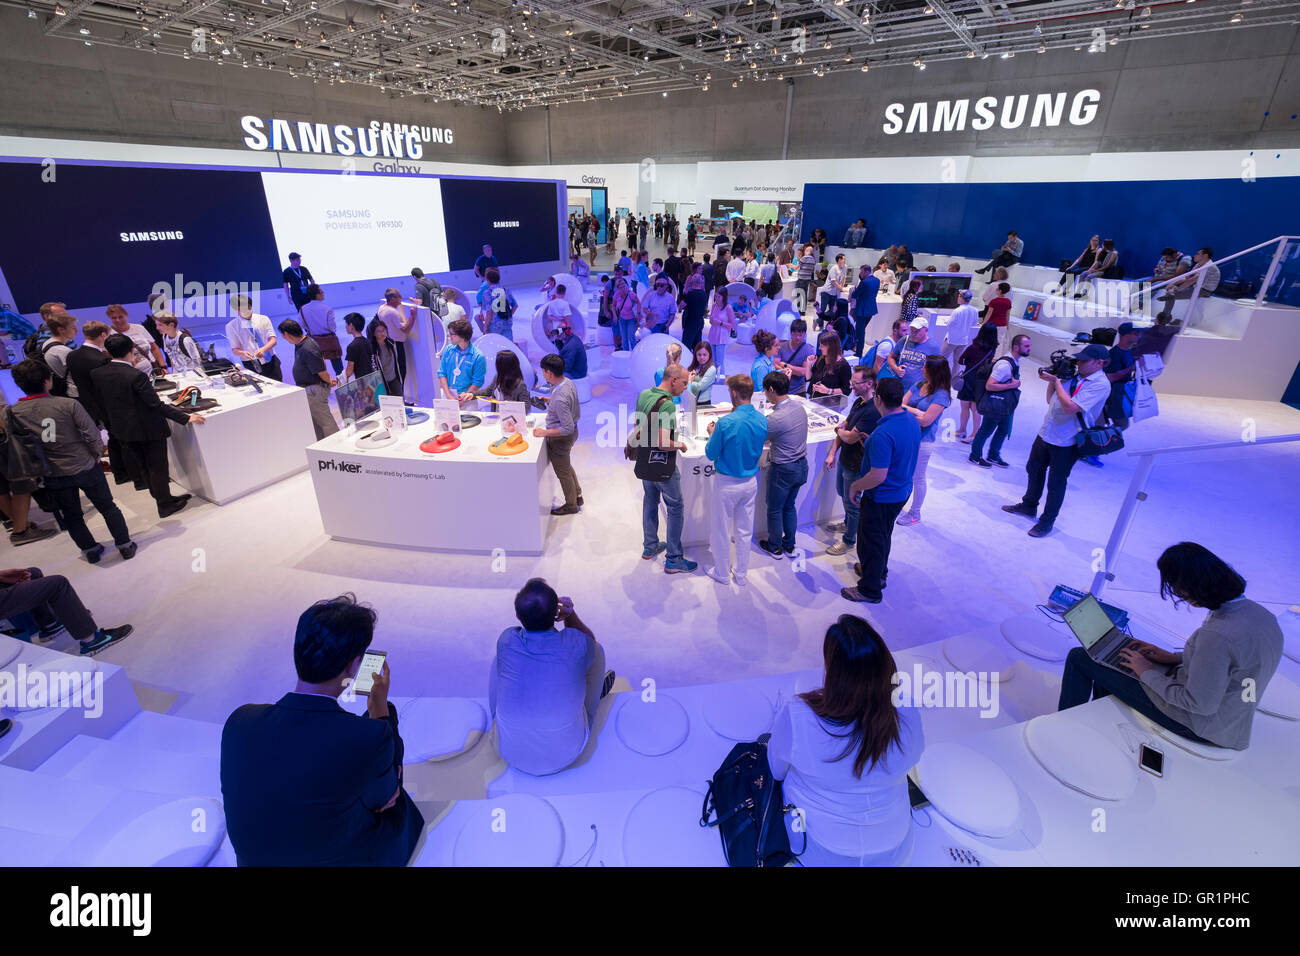 Busy Samsung stand at 2016  IFA (Internationale Funkausstellung Berlin), Berlin, Germany - Stock Image